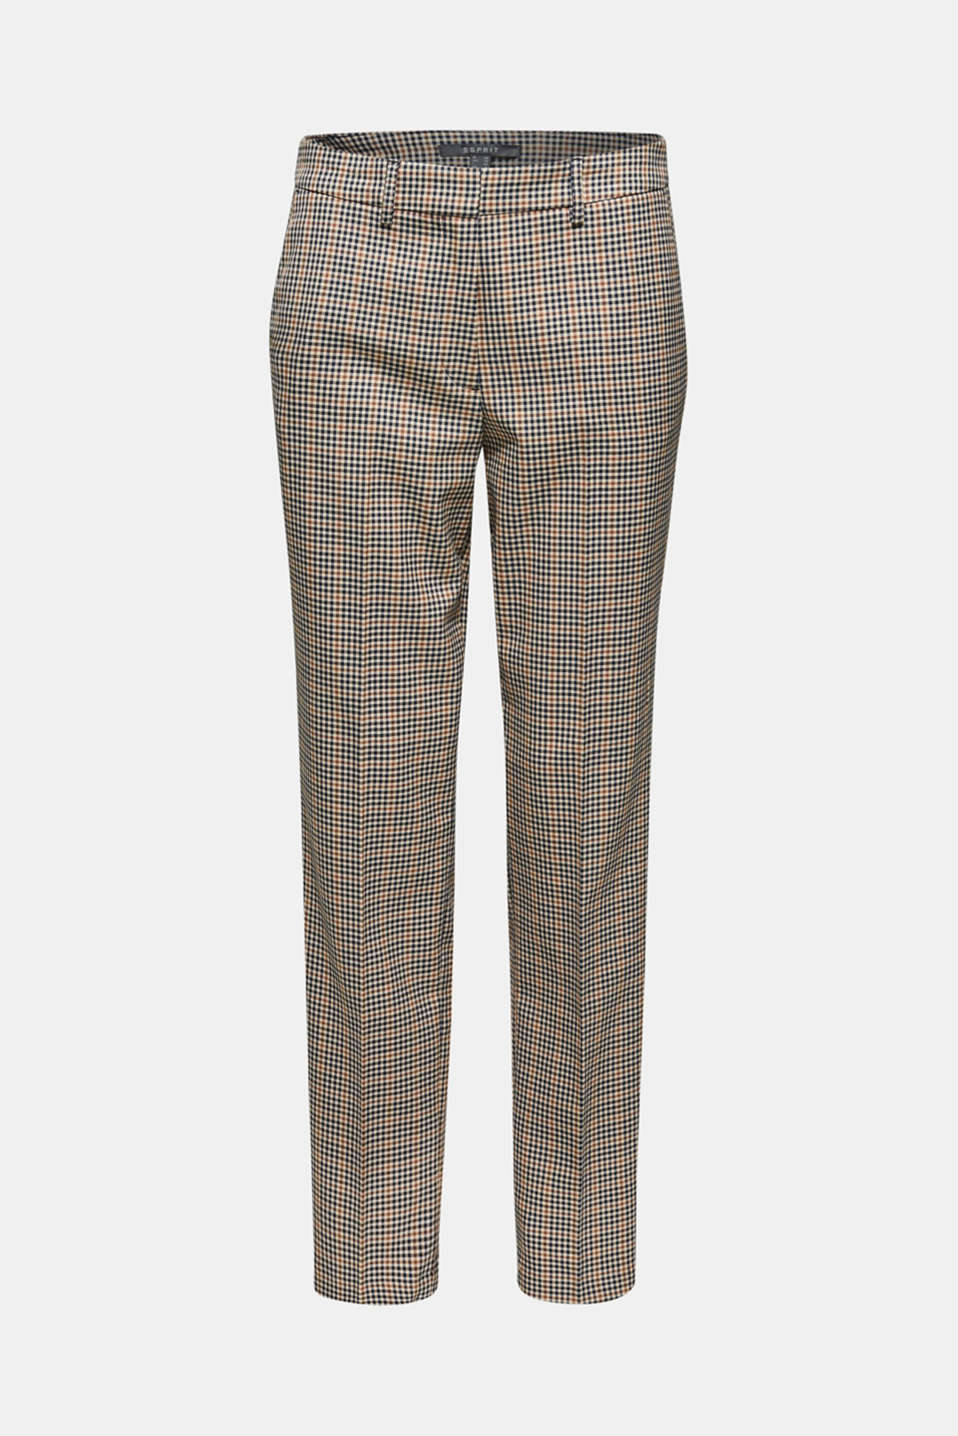 Stretch trousers with a small check, CAMEL, detail image number 7